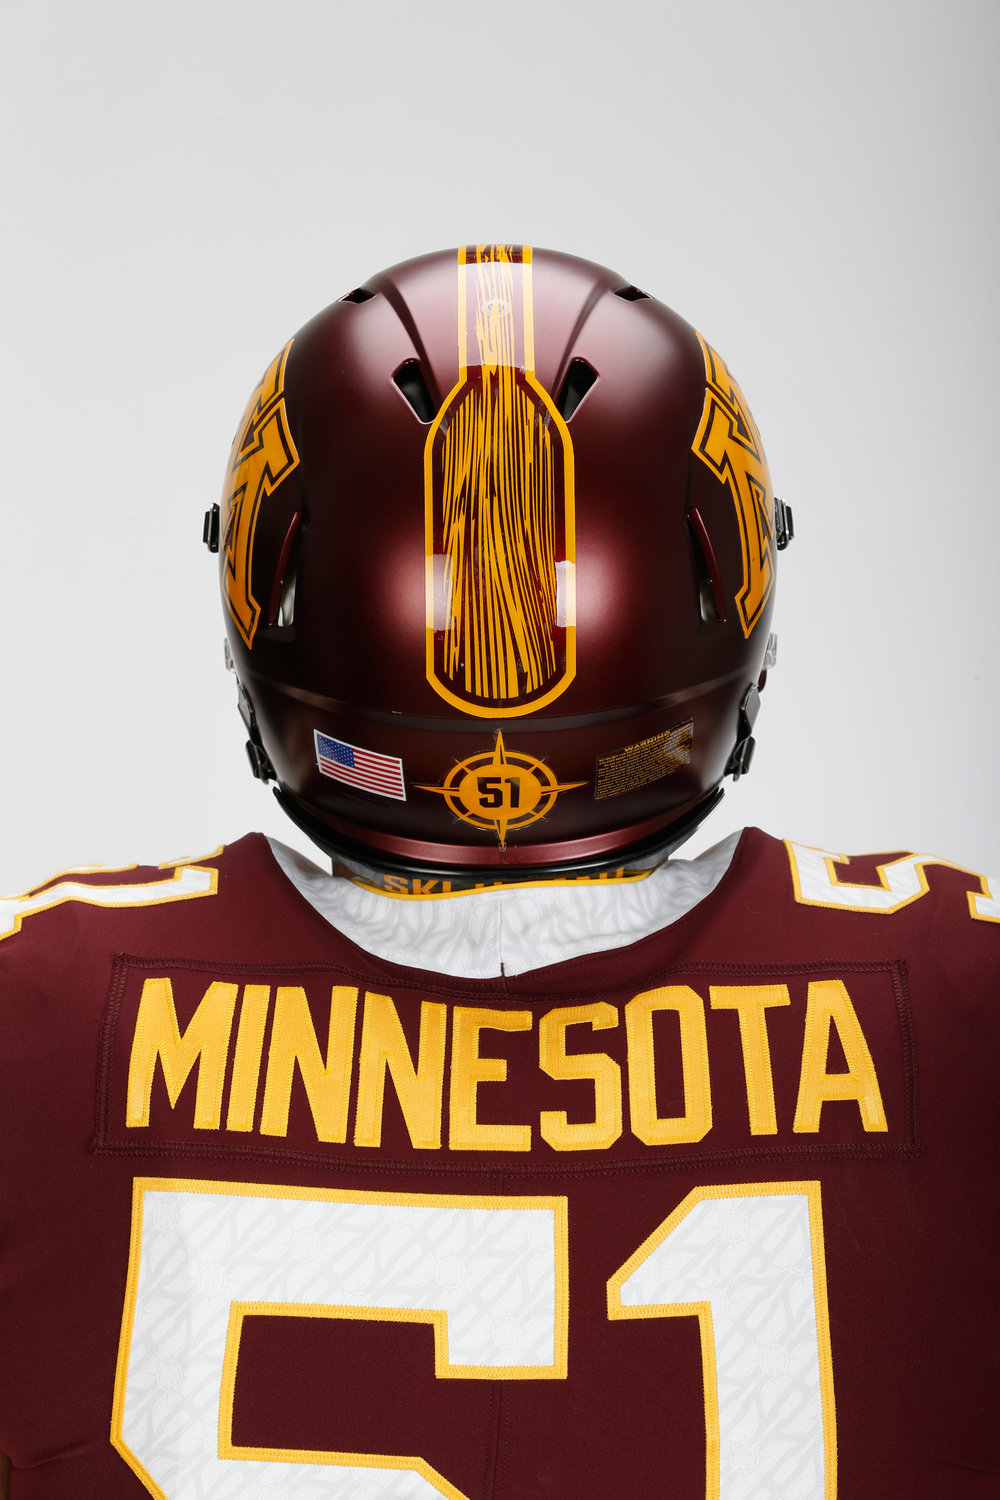 back-of-maroon-helmet.jpg